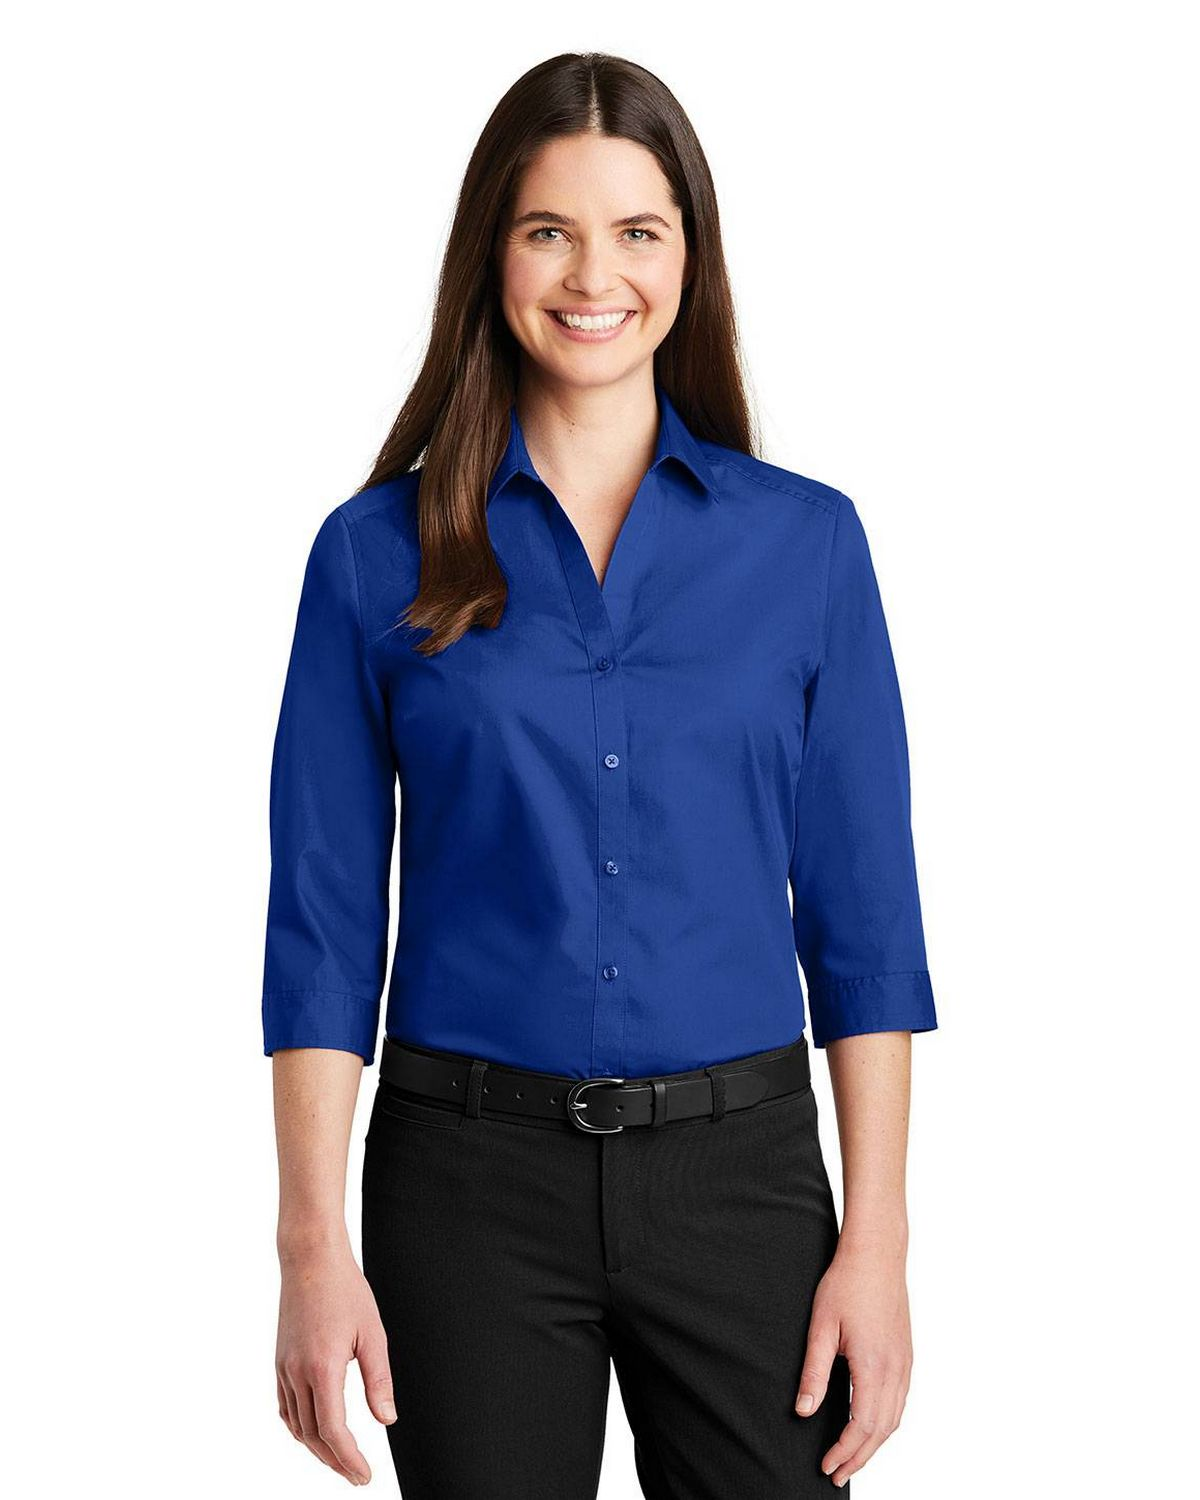 Port Authority LW102 Ladies 3/4 Sleeve Carefree Poplin Shirt